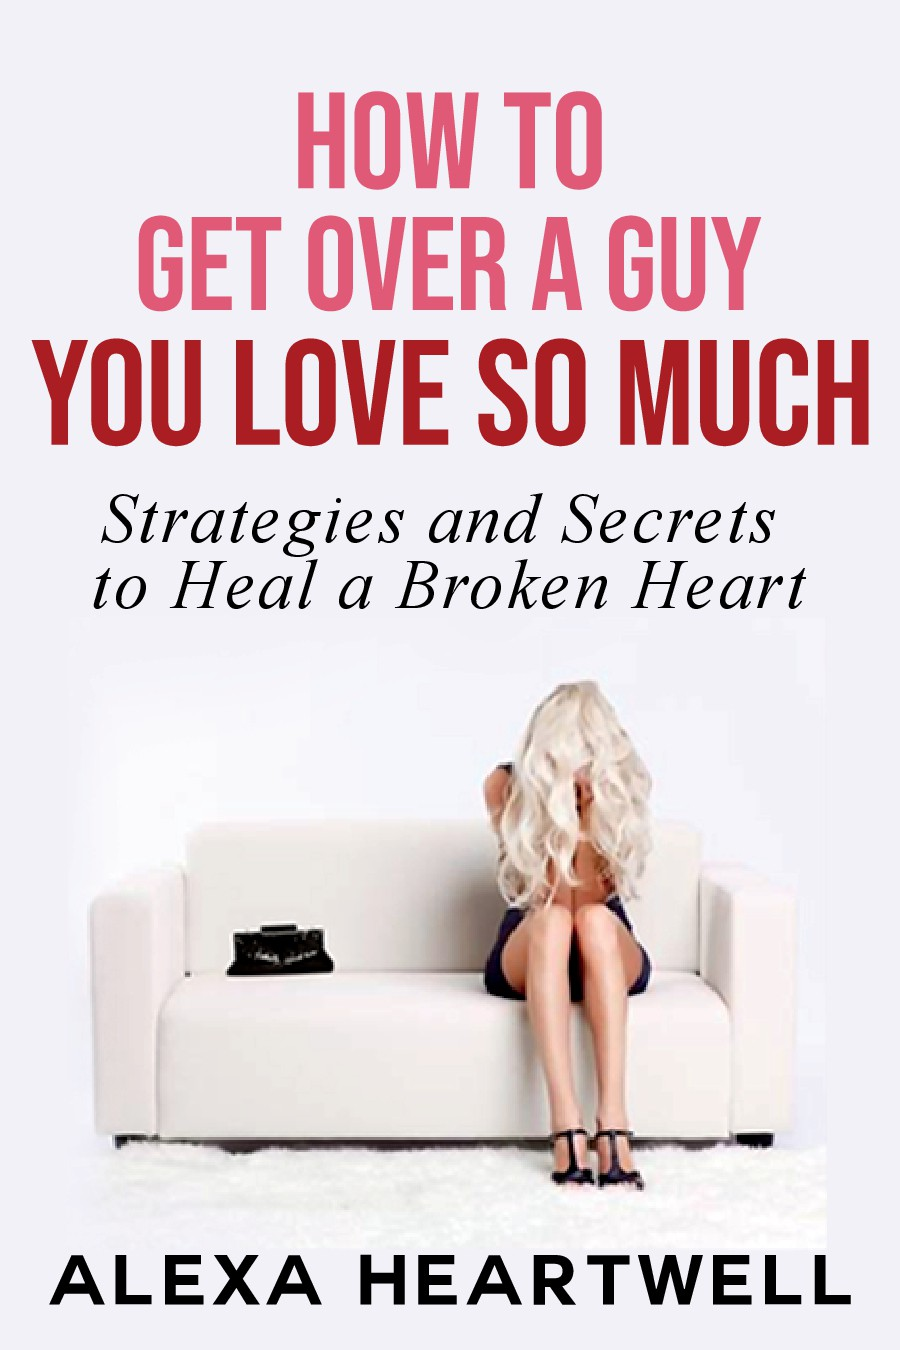 Creative Book Cover for a Female Dating and Relationships Title